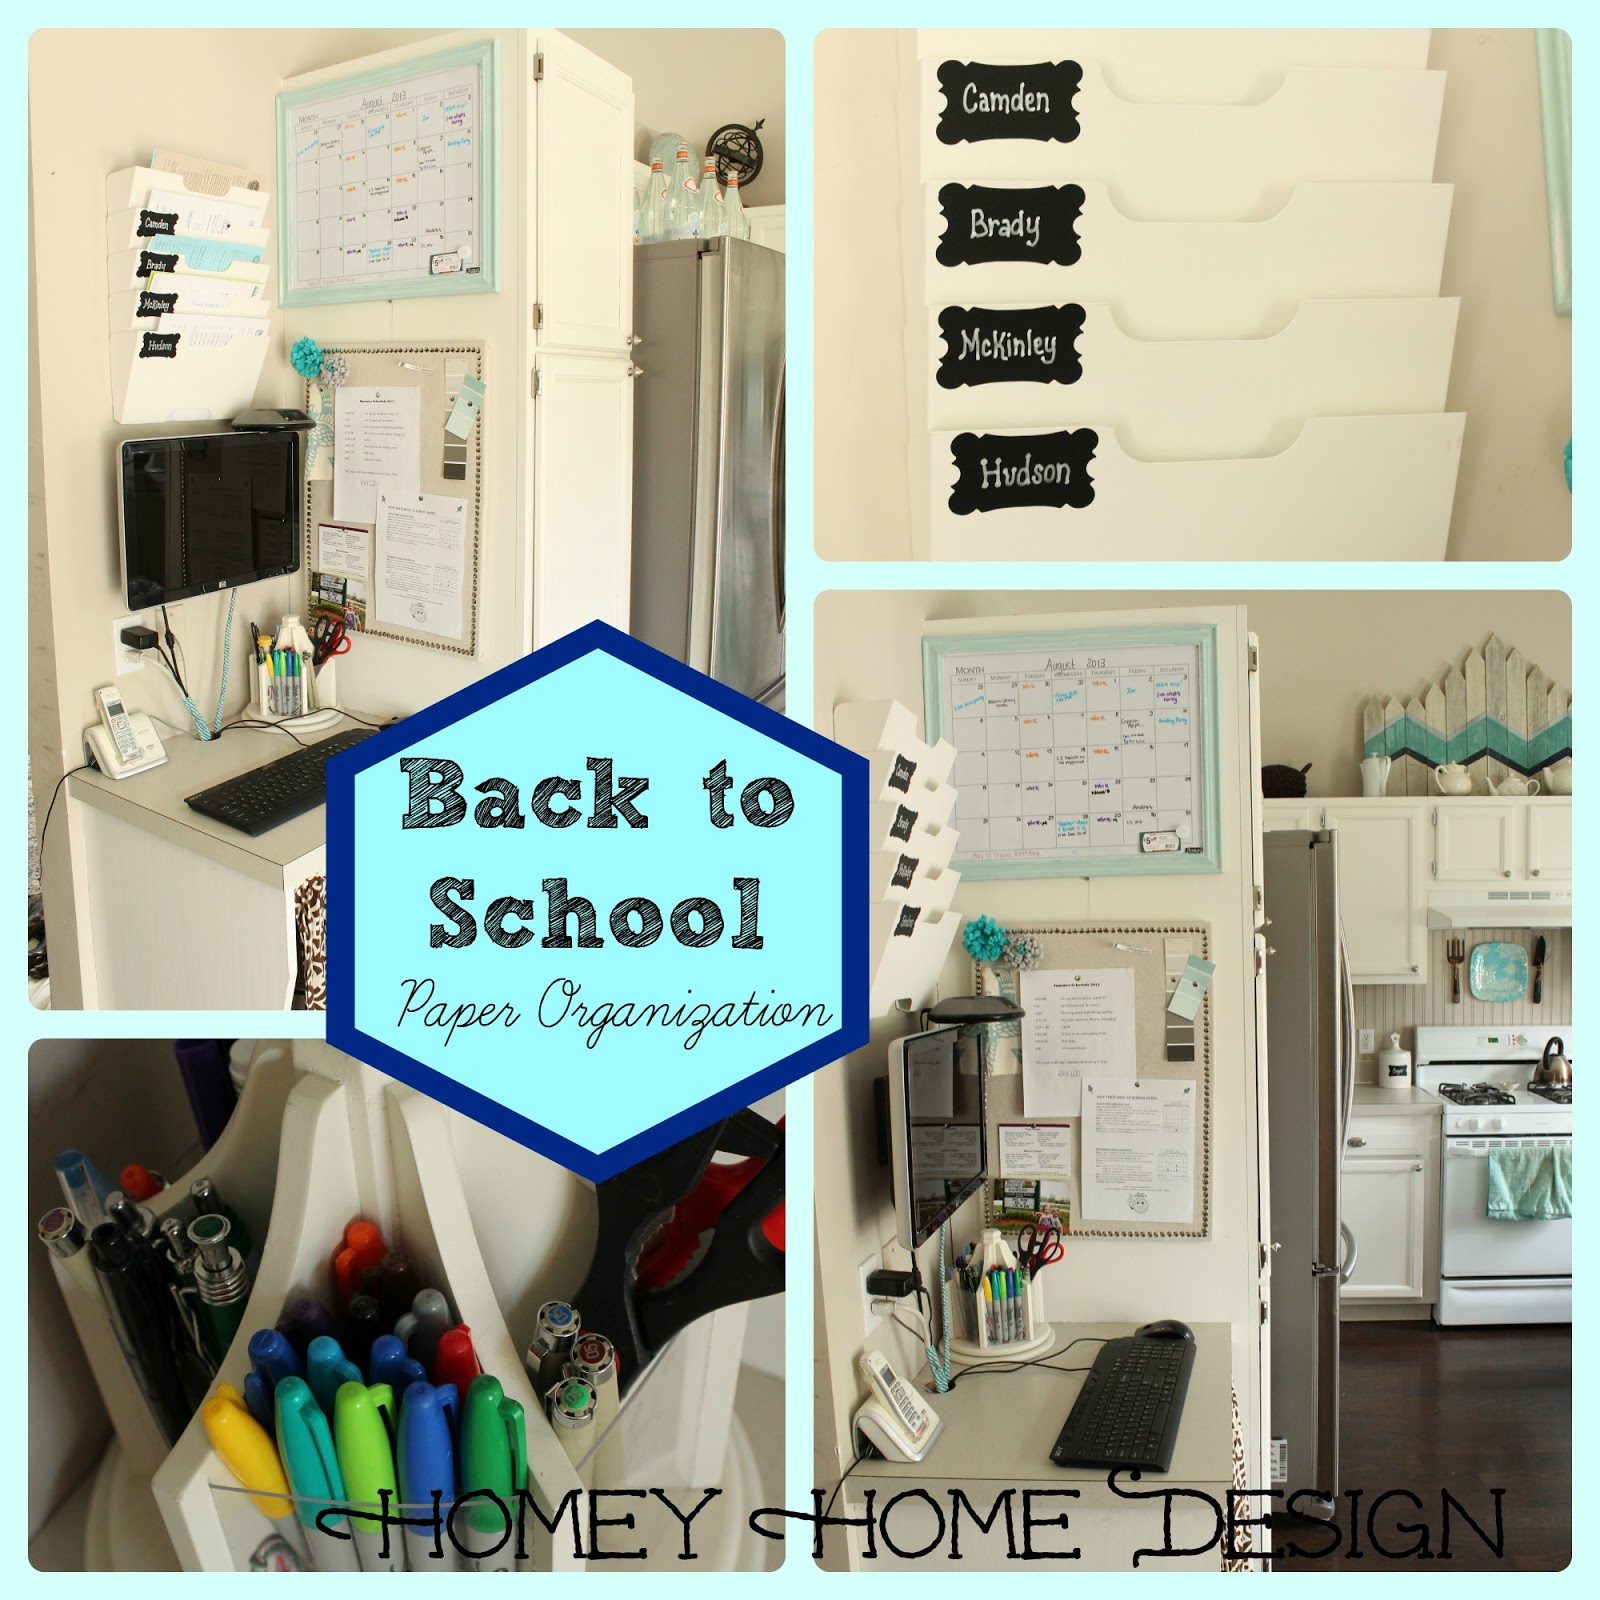 homey home design: Back To School Organization Part 1